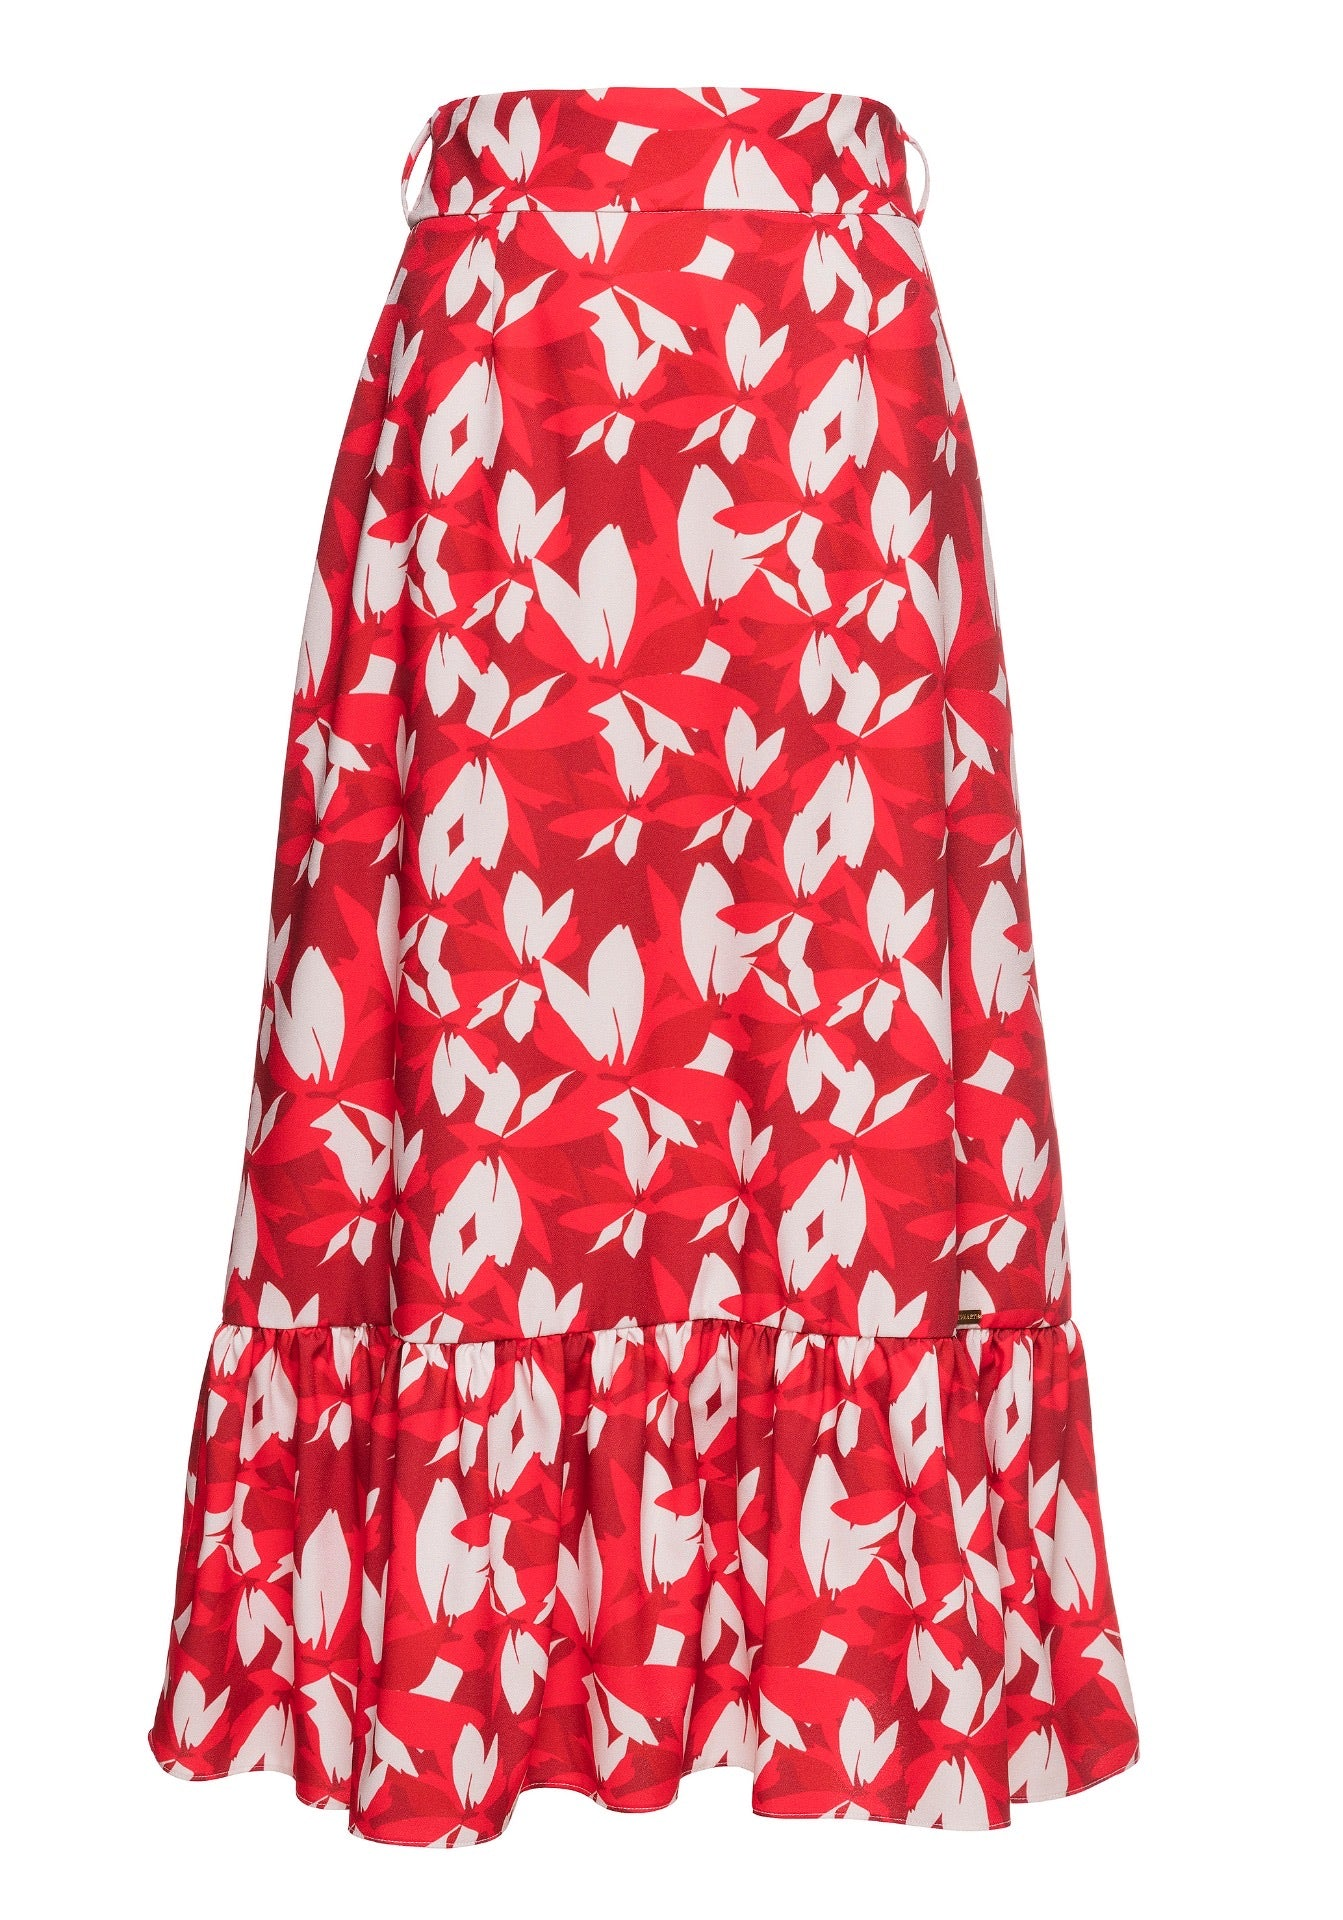 Red Blossom Skirt - Monarte